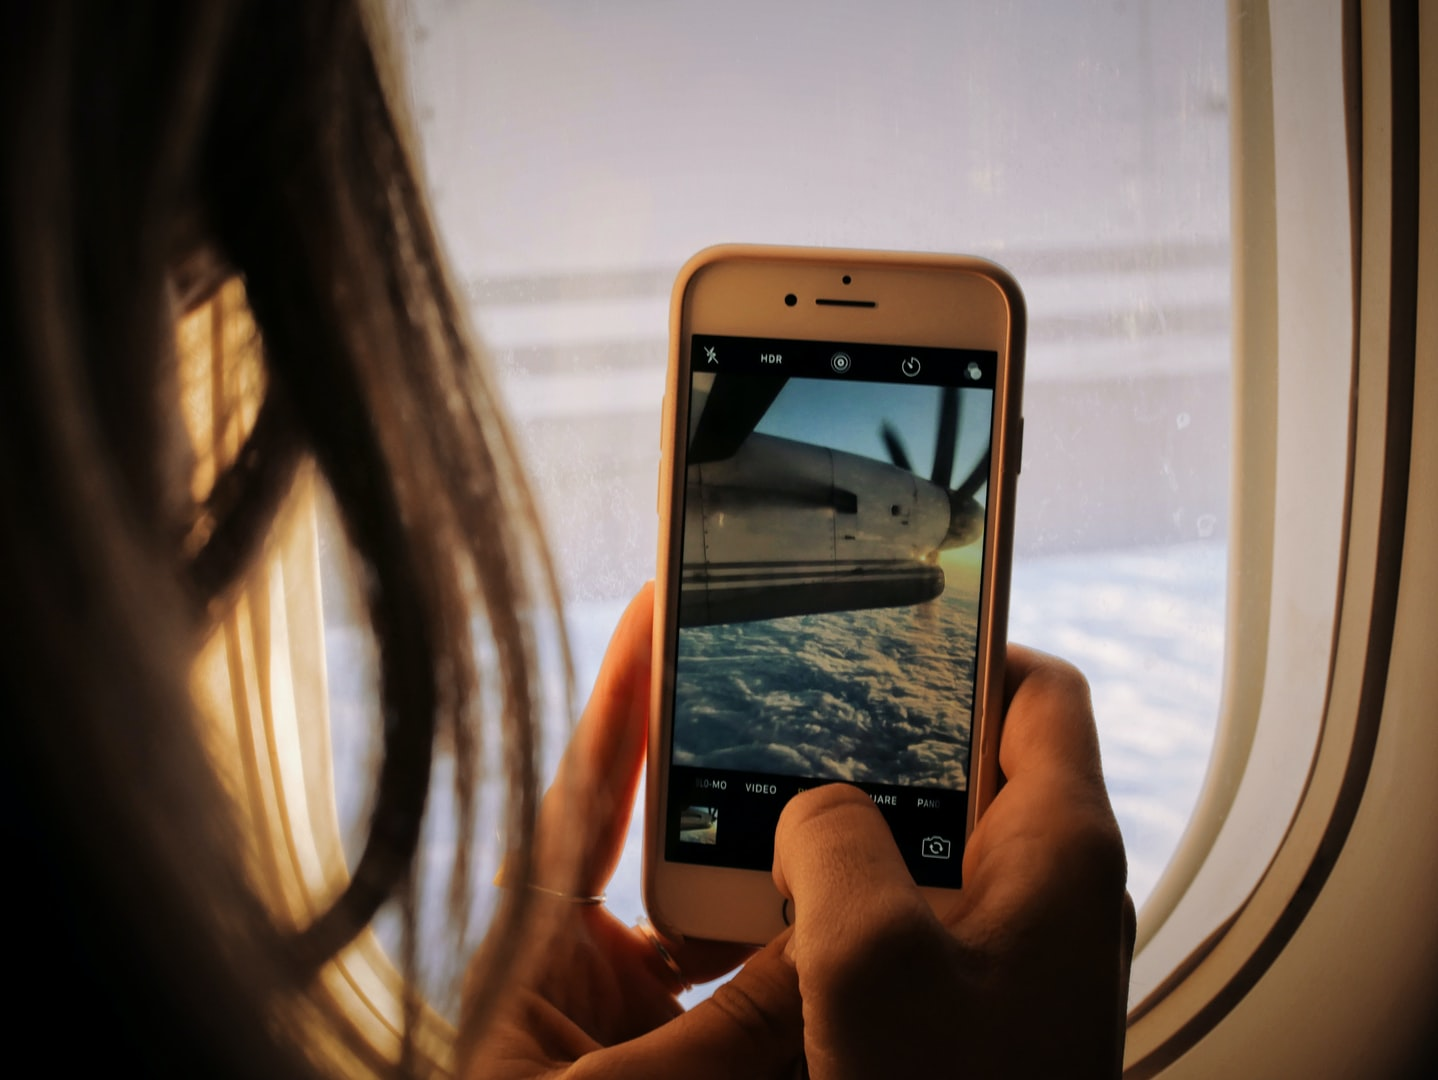 Taking photo on mobile out window of a plane